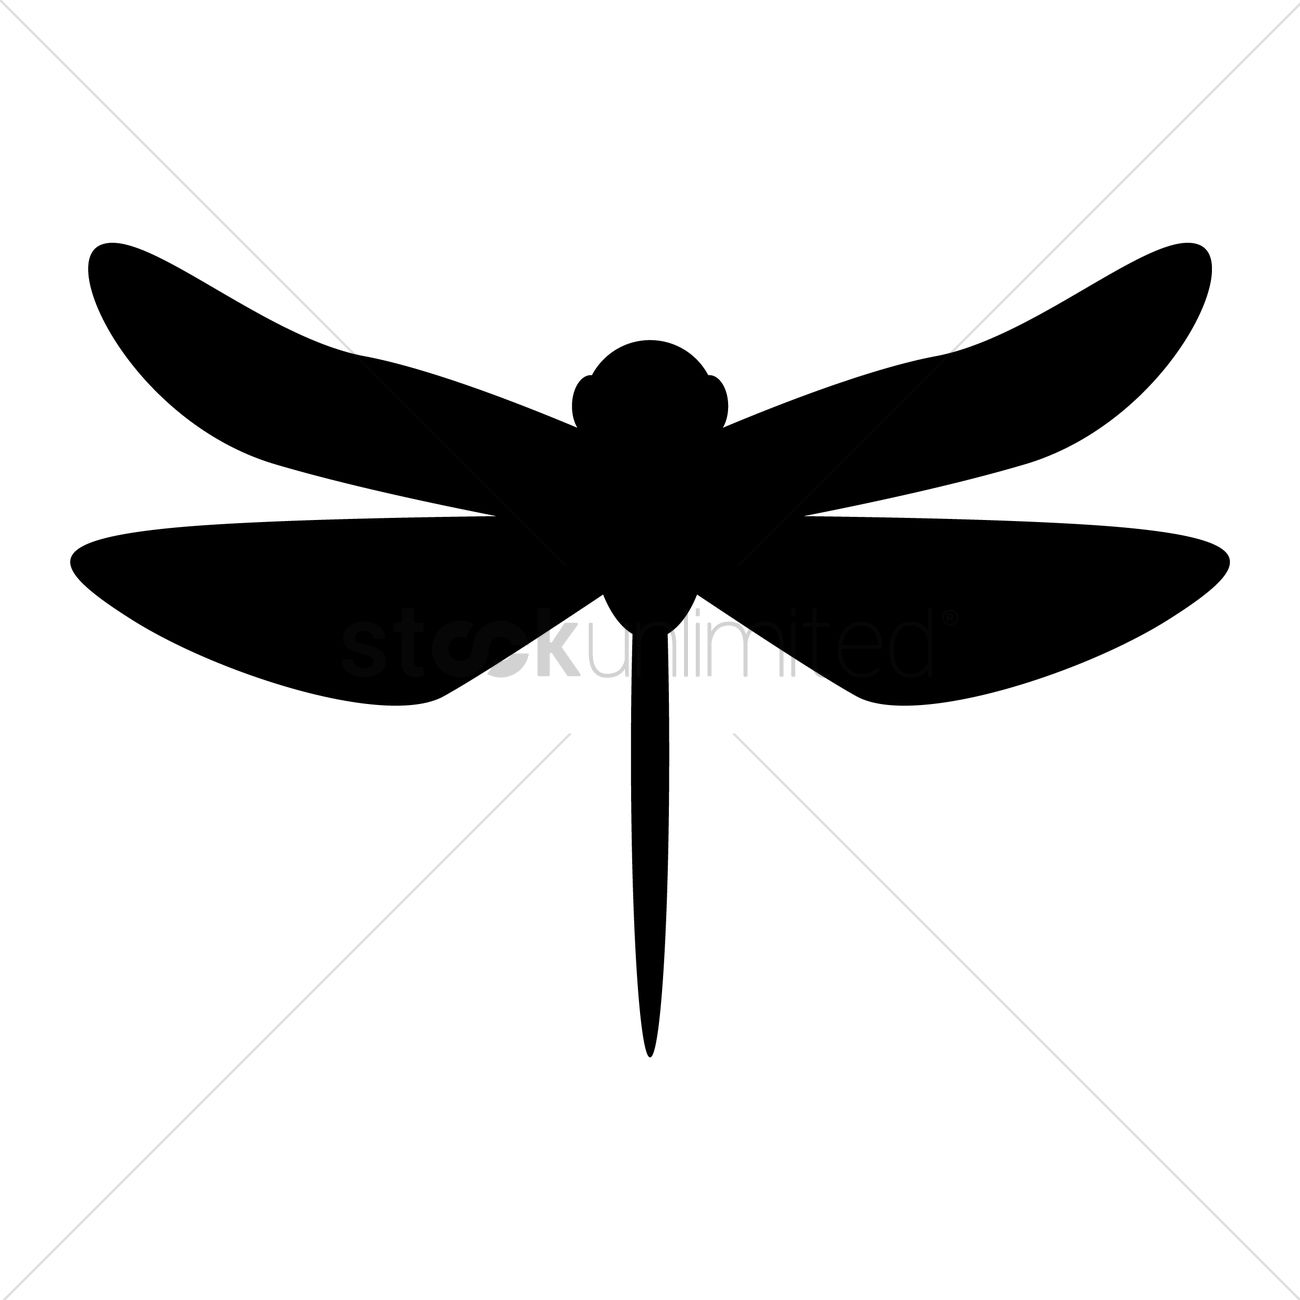 Dragonfly silhouette vector image 1955805 stockunlimited dragonfly silhouette vector graphic biocorpaavc